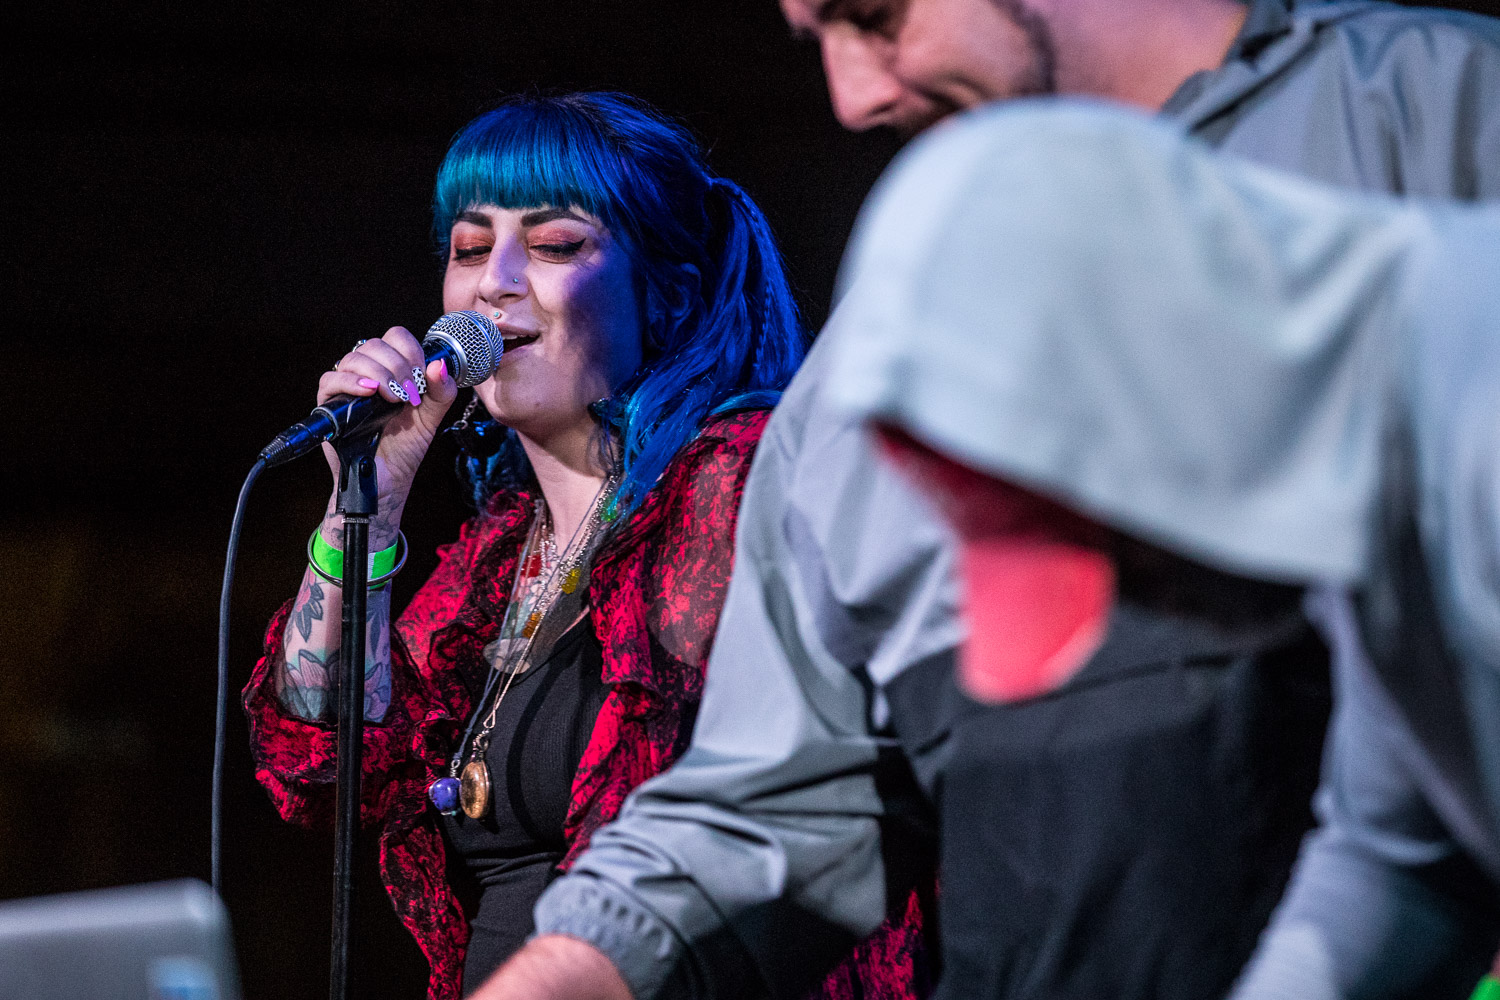 Kat The Destroyer performing with The DeLazers